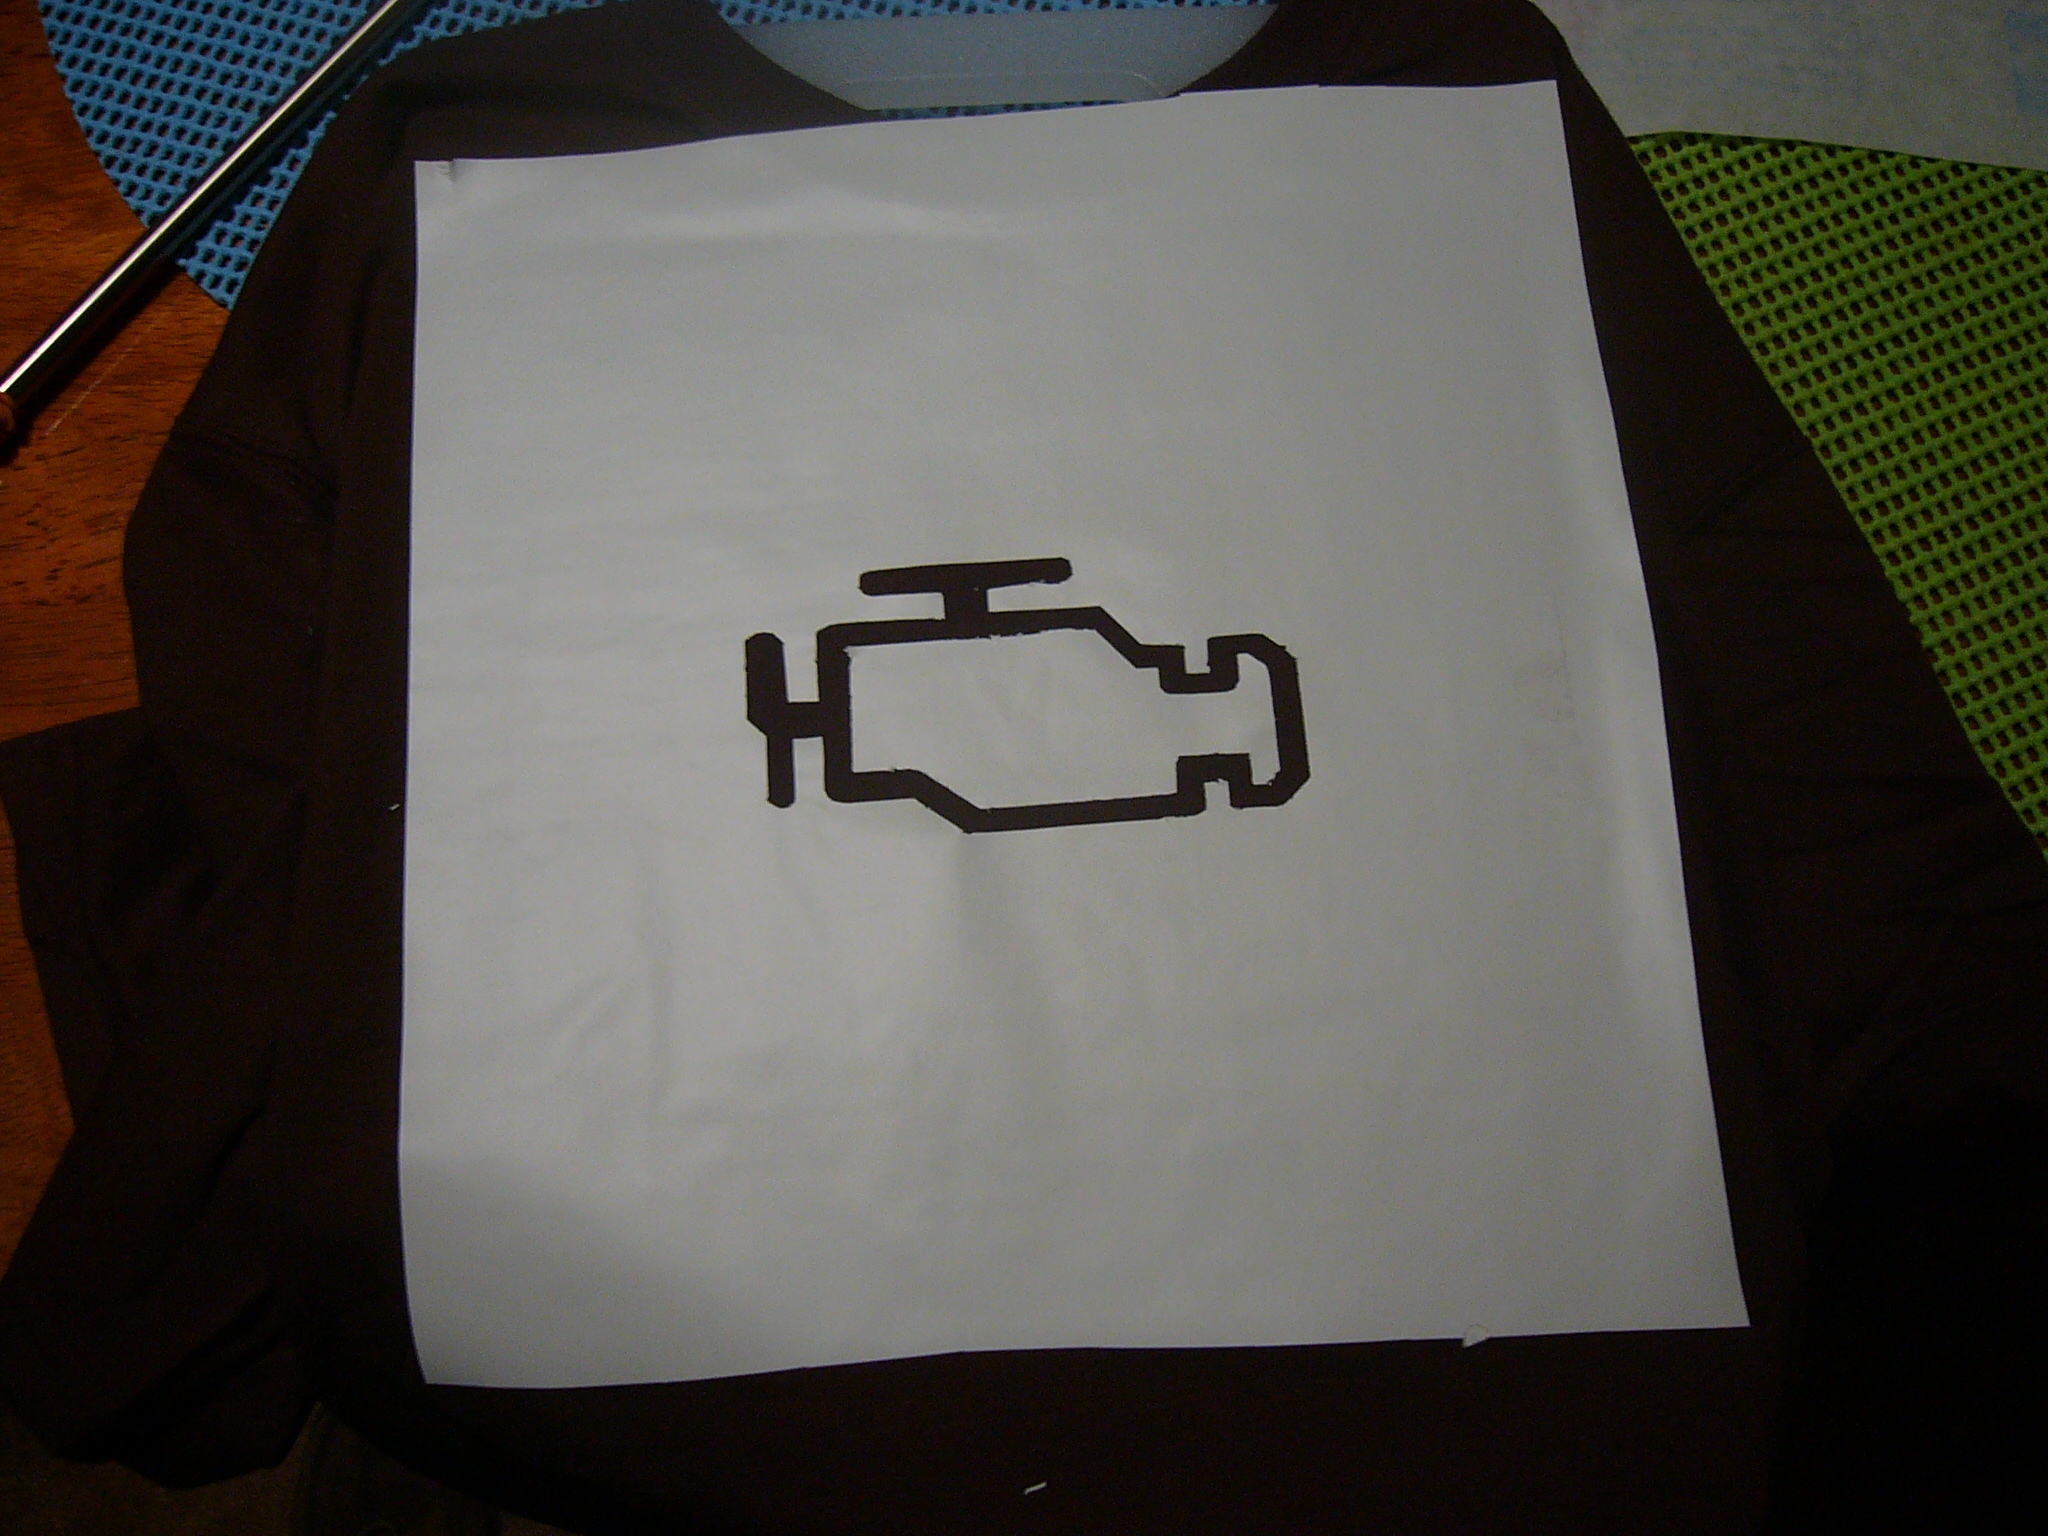 Picture of Find an Image and Cut Stencil